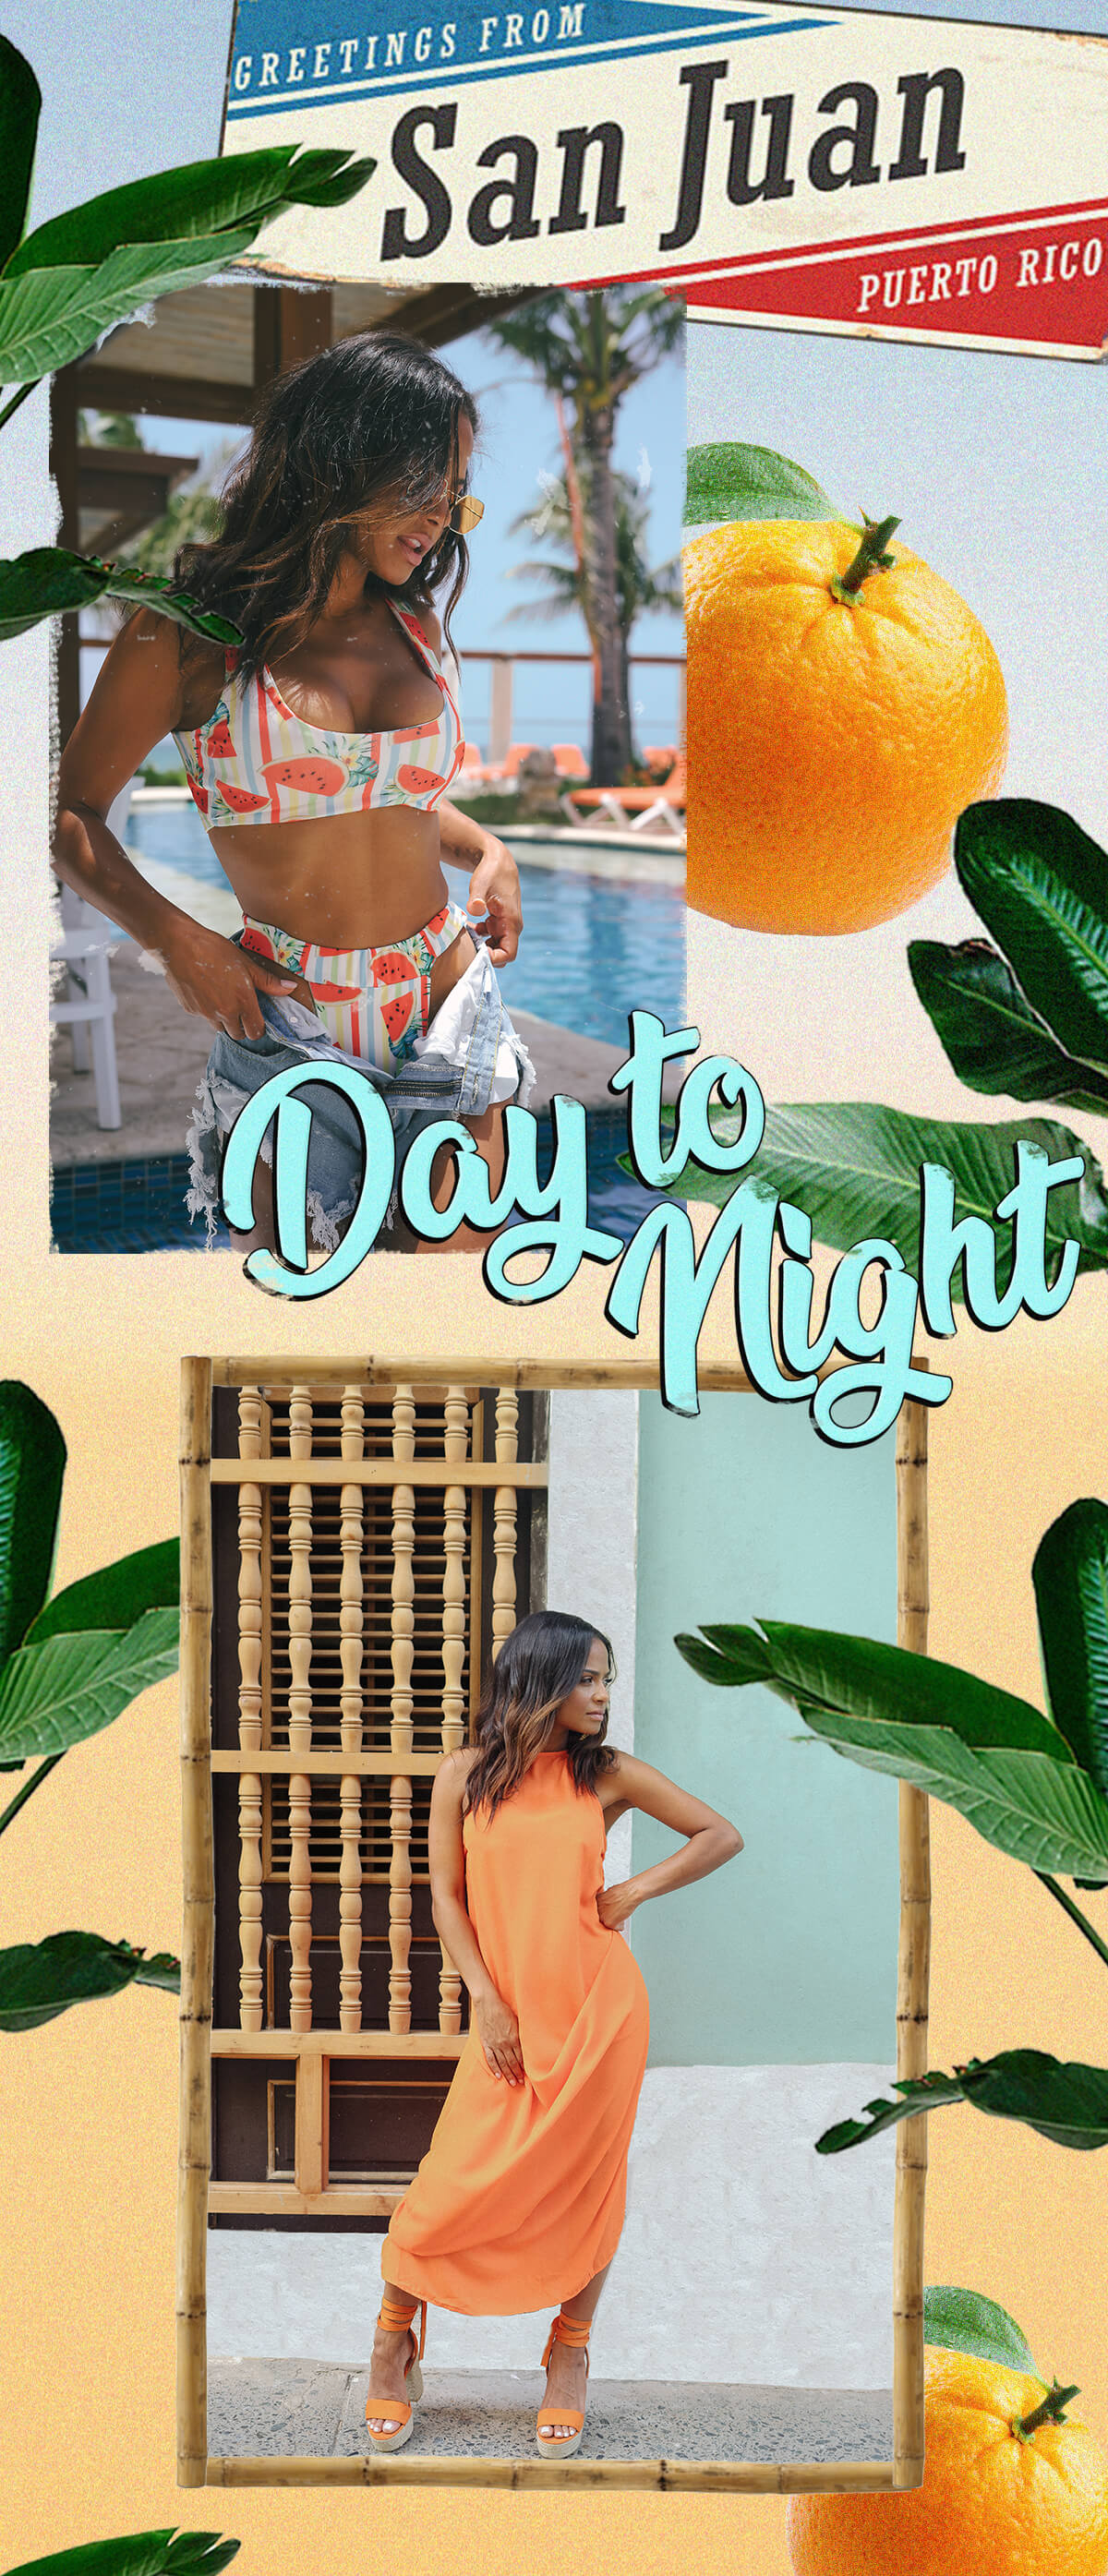 Christina Milian Shoot 6 White Watermelon Bikini Top, Watermelon Bikini Bottom & Orange Maxi Dress Mobile